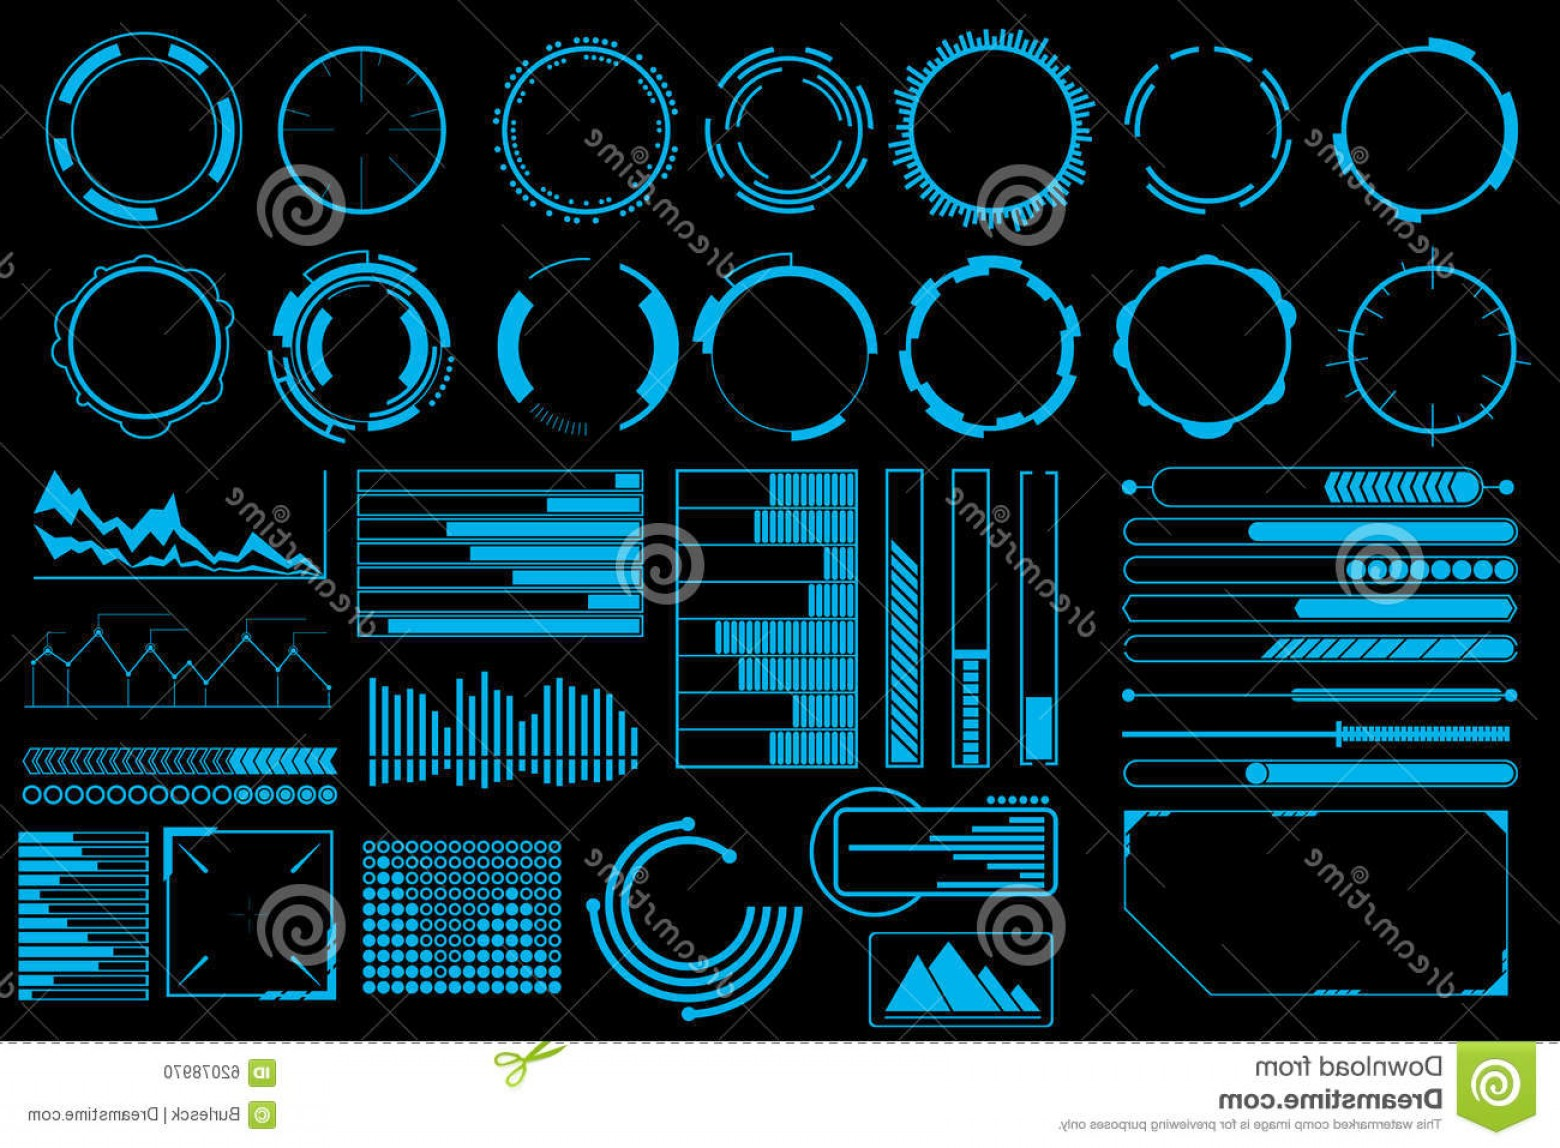 Futuristic Render Vector Graphics: Stock Illustration Futuristic User Interface Elements Vector Set Web Banner Abstract Bar Info Graphic Design Illustration Image